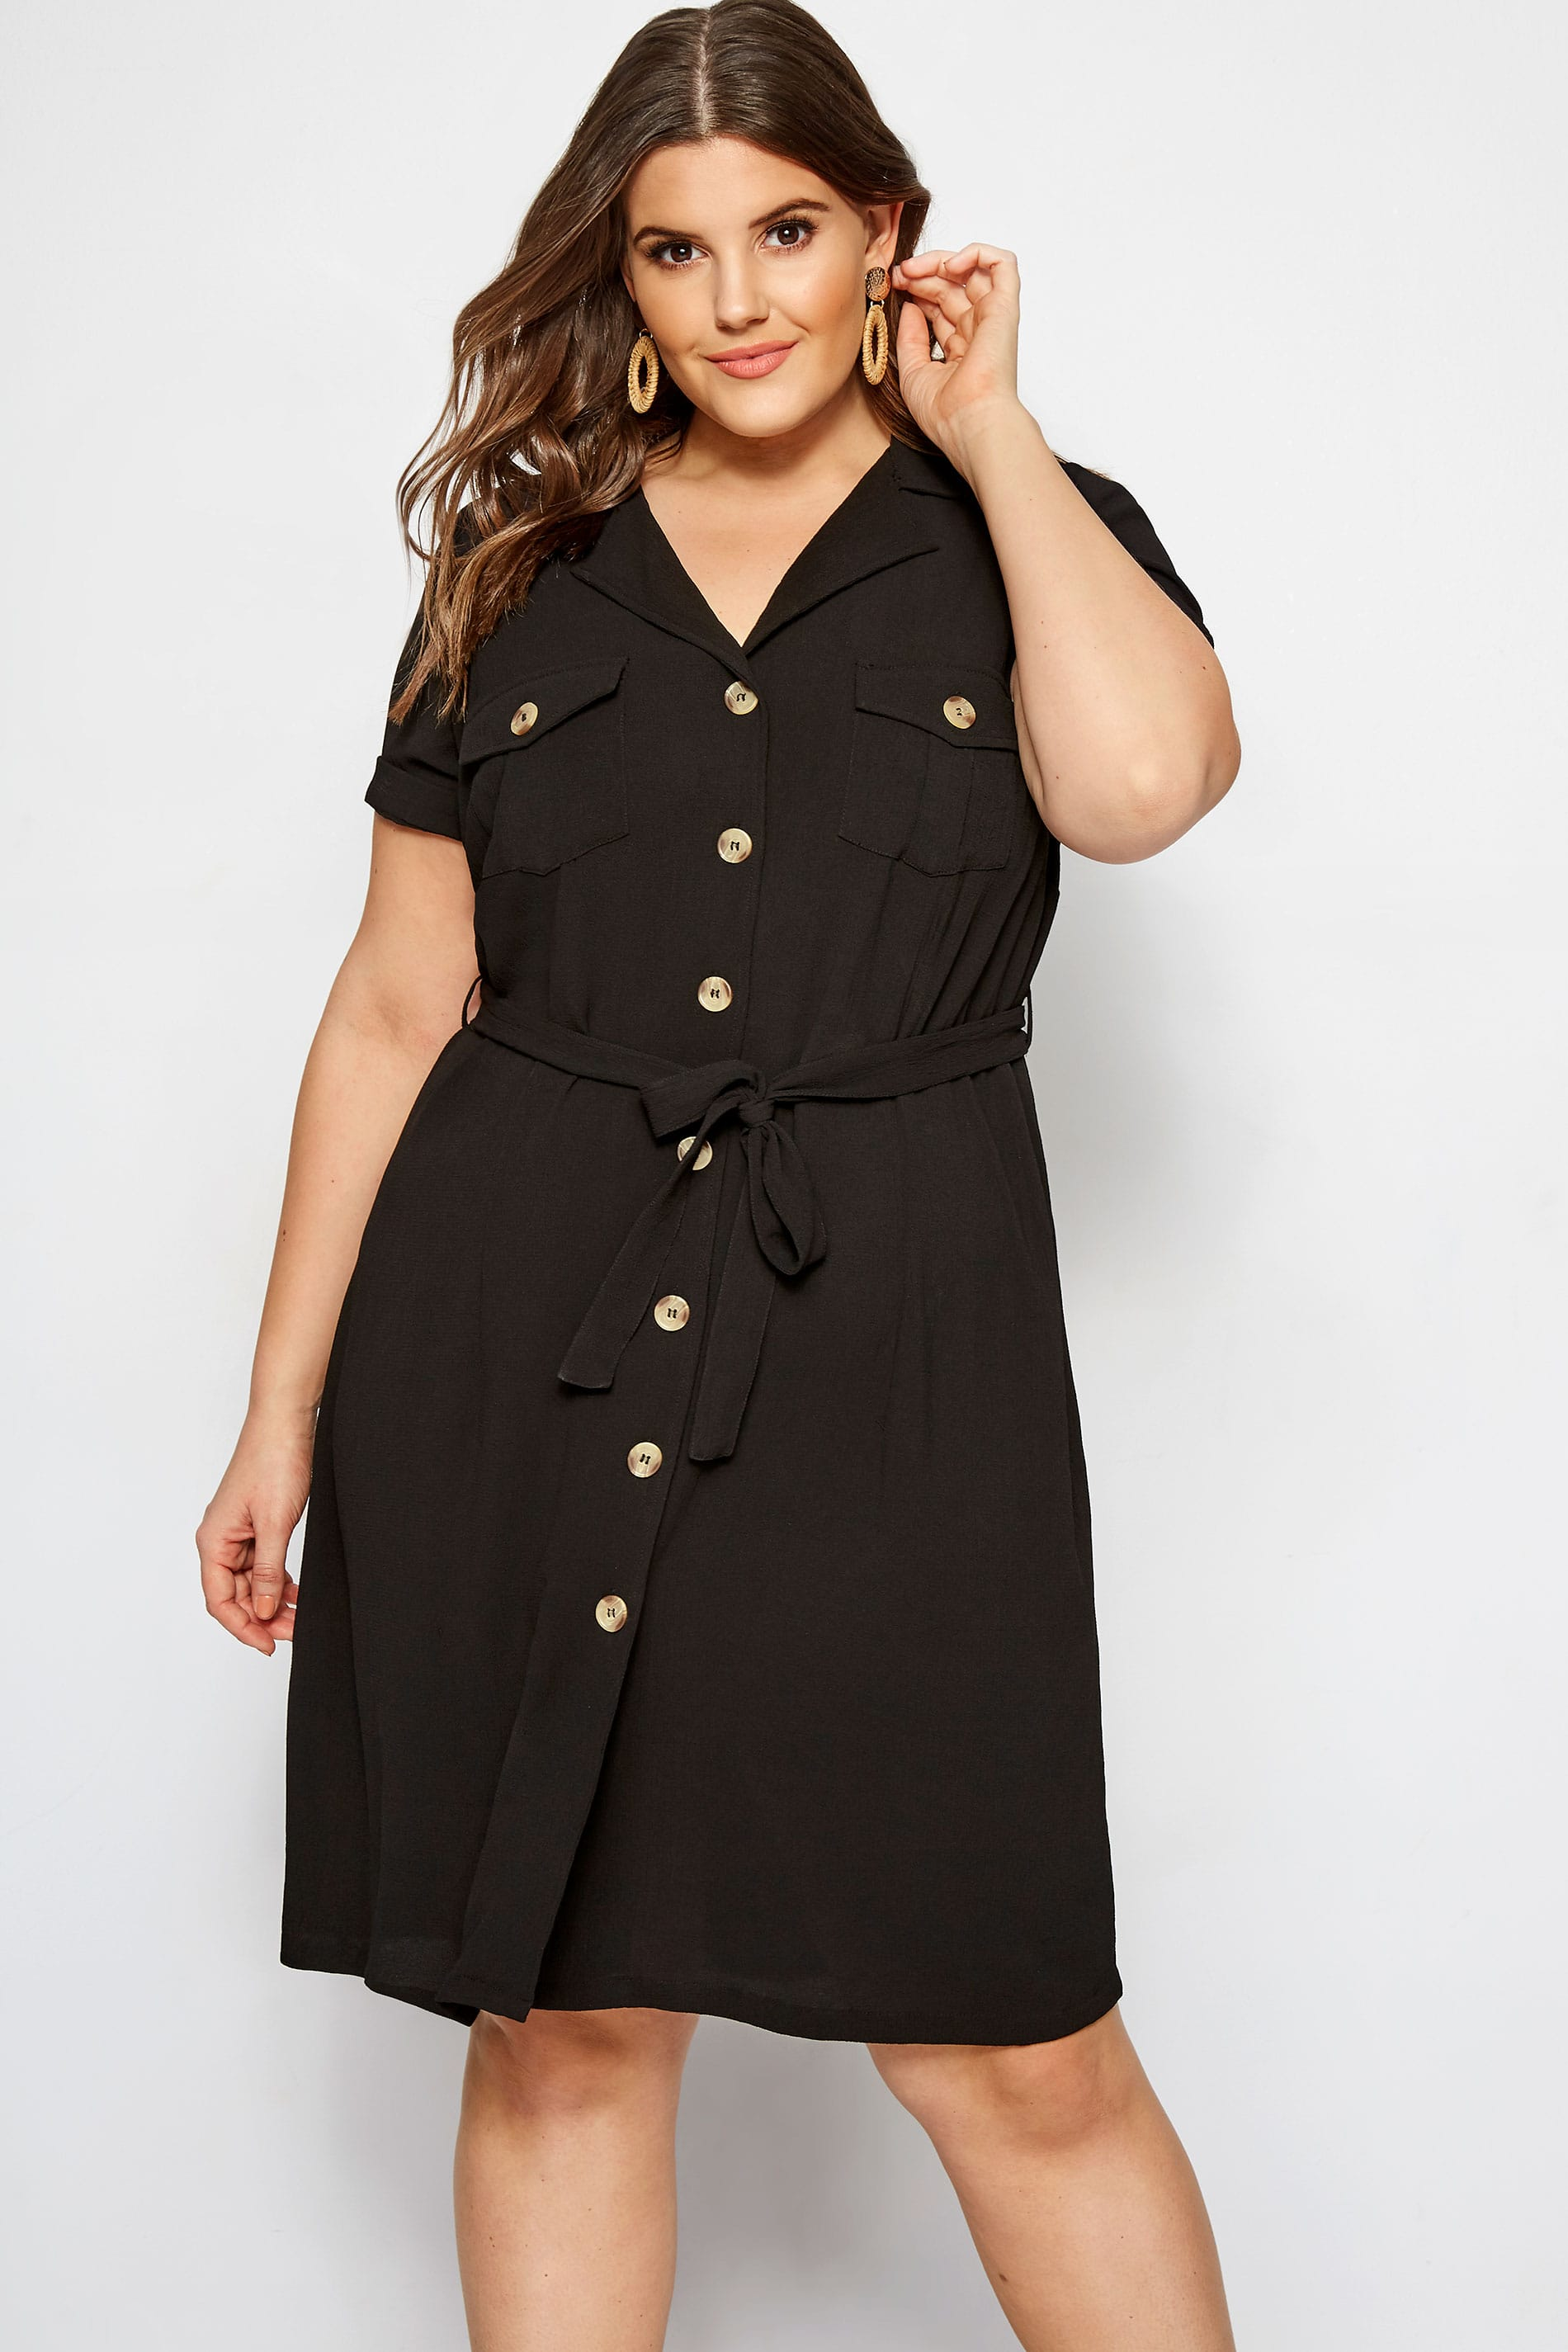 8e8281cb58 Plus Size Black Utility Shirt Dress | Sizes 16 to 36 | Yours Clothing